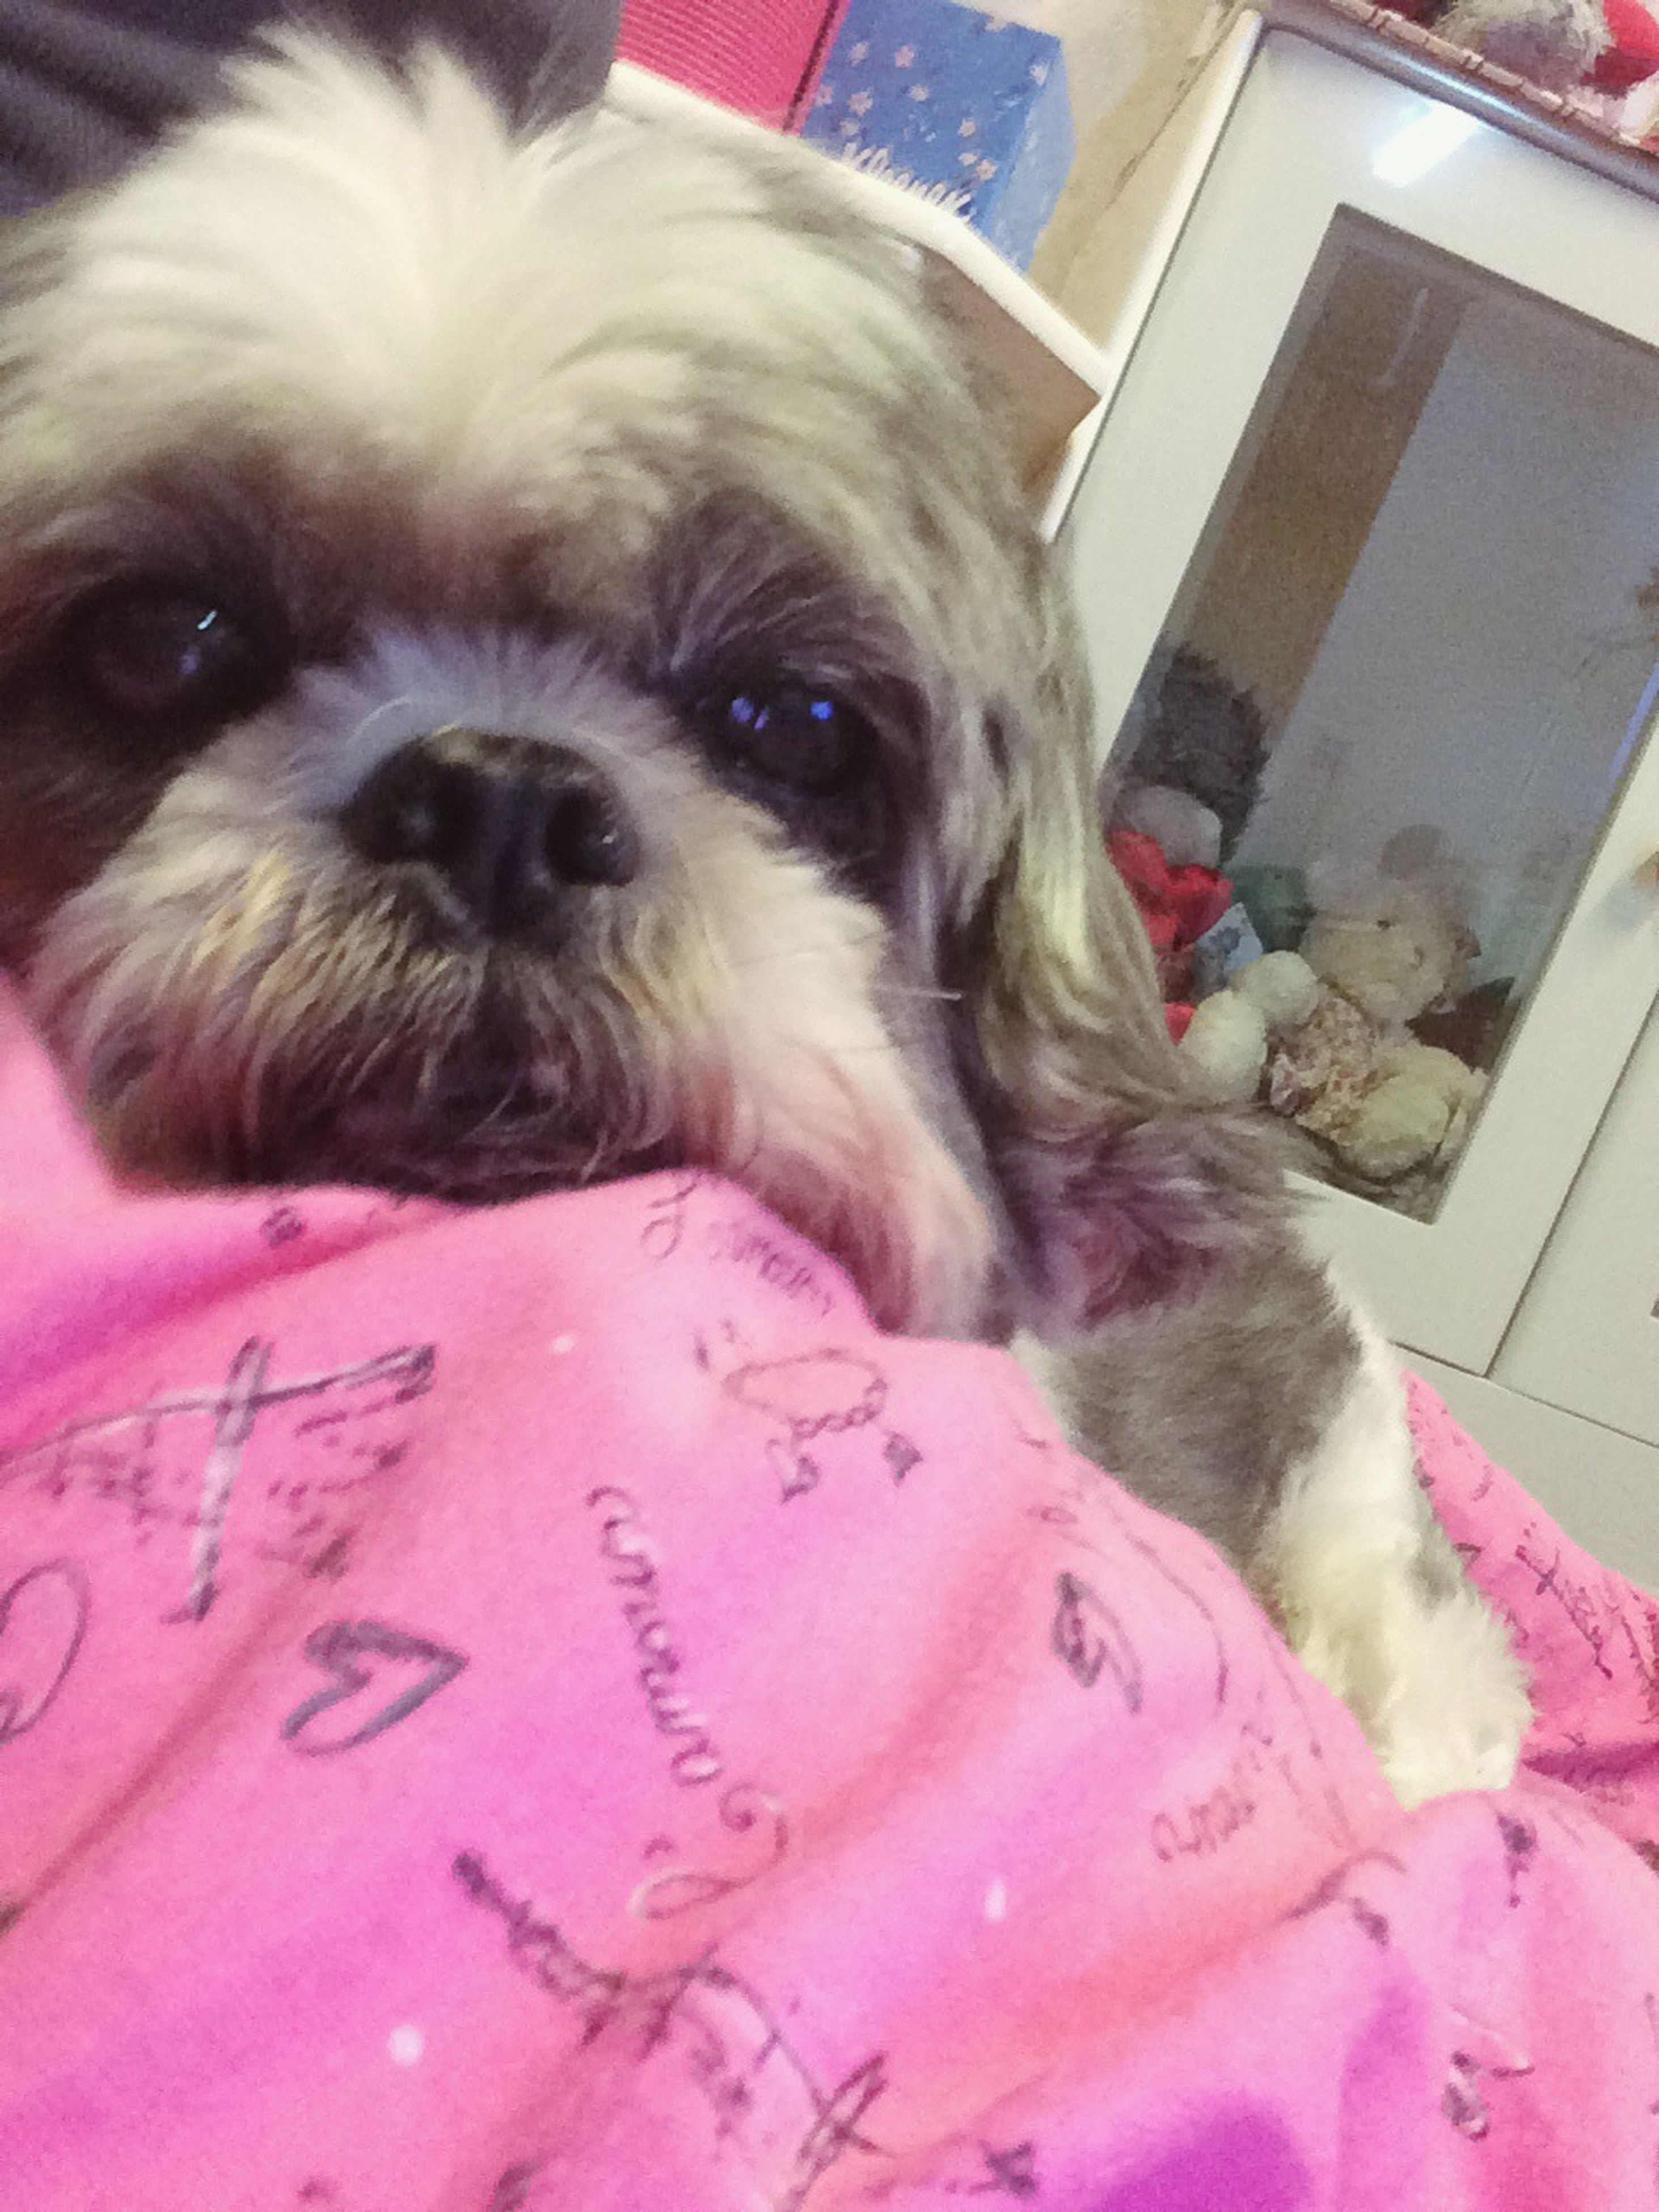 pets, domestic animals, dog, indoors, one animal, animal themes, mammal, looking at camera, portrait, relaxation, home interior, bed, close-up, lying down, sofa, home, resting, animal head, no people, cute